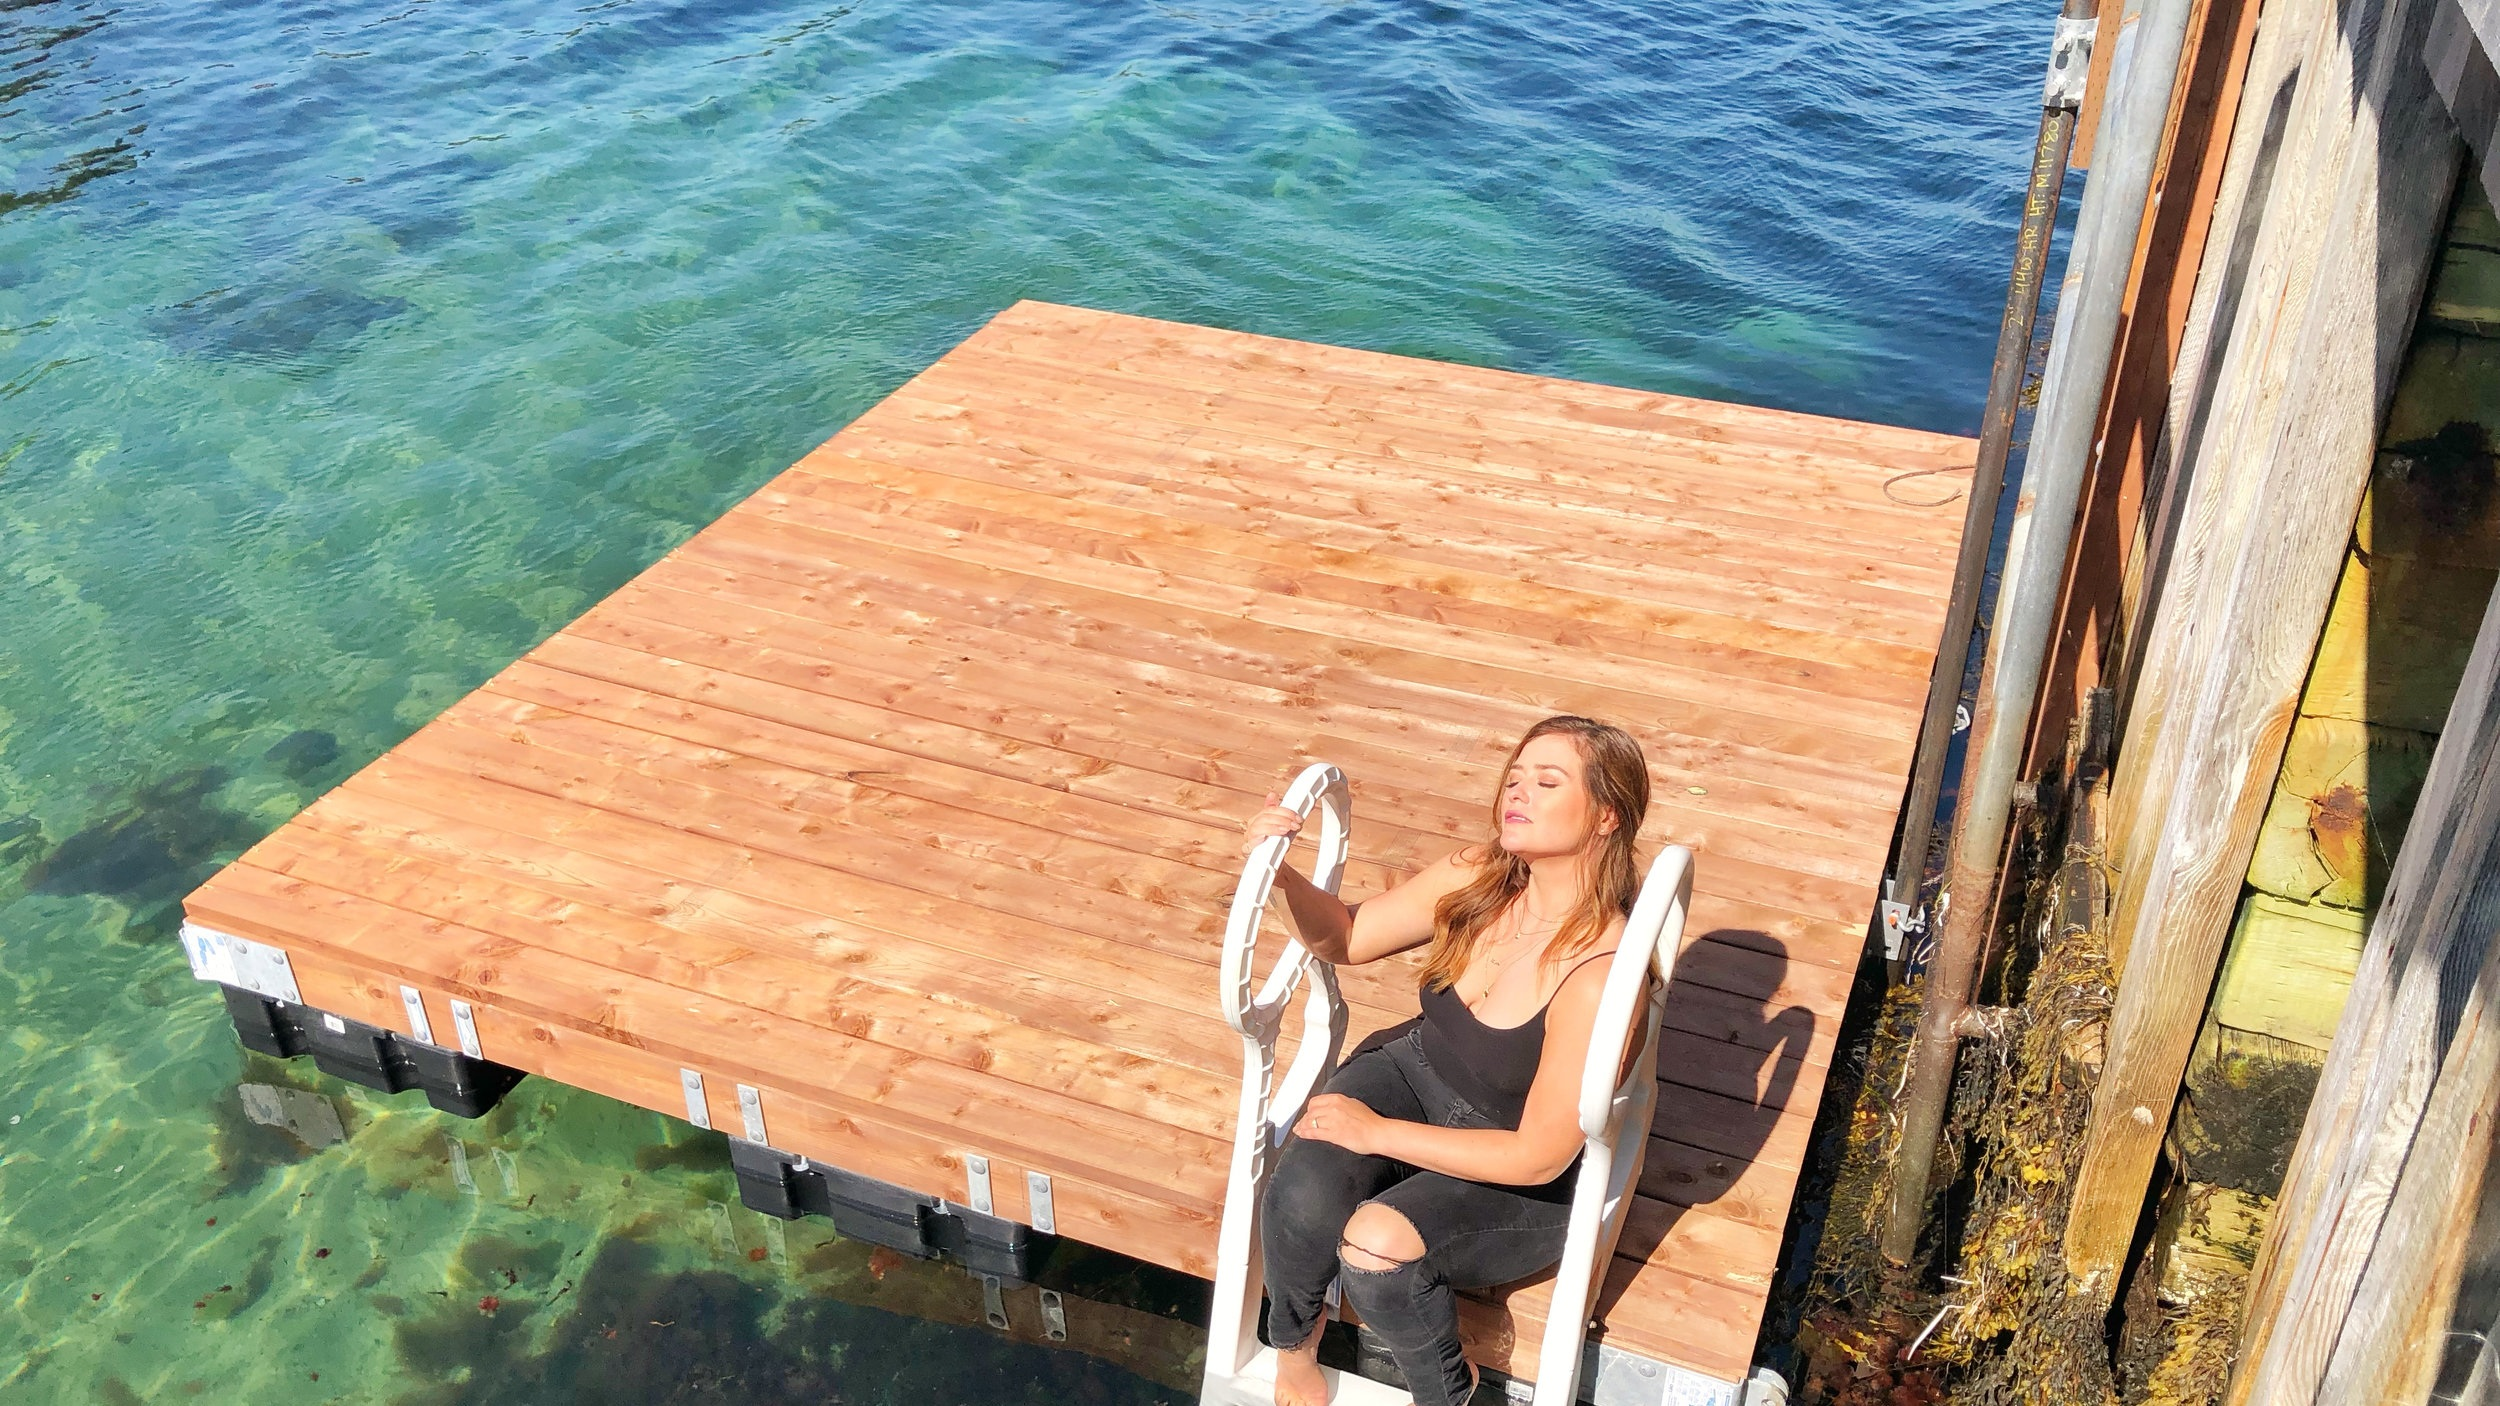 FLOATING DOCK - With Home Hardware's Backyard Project Packages